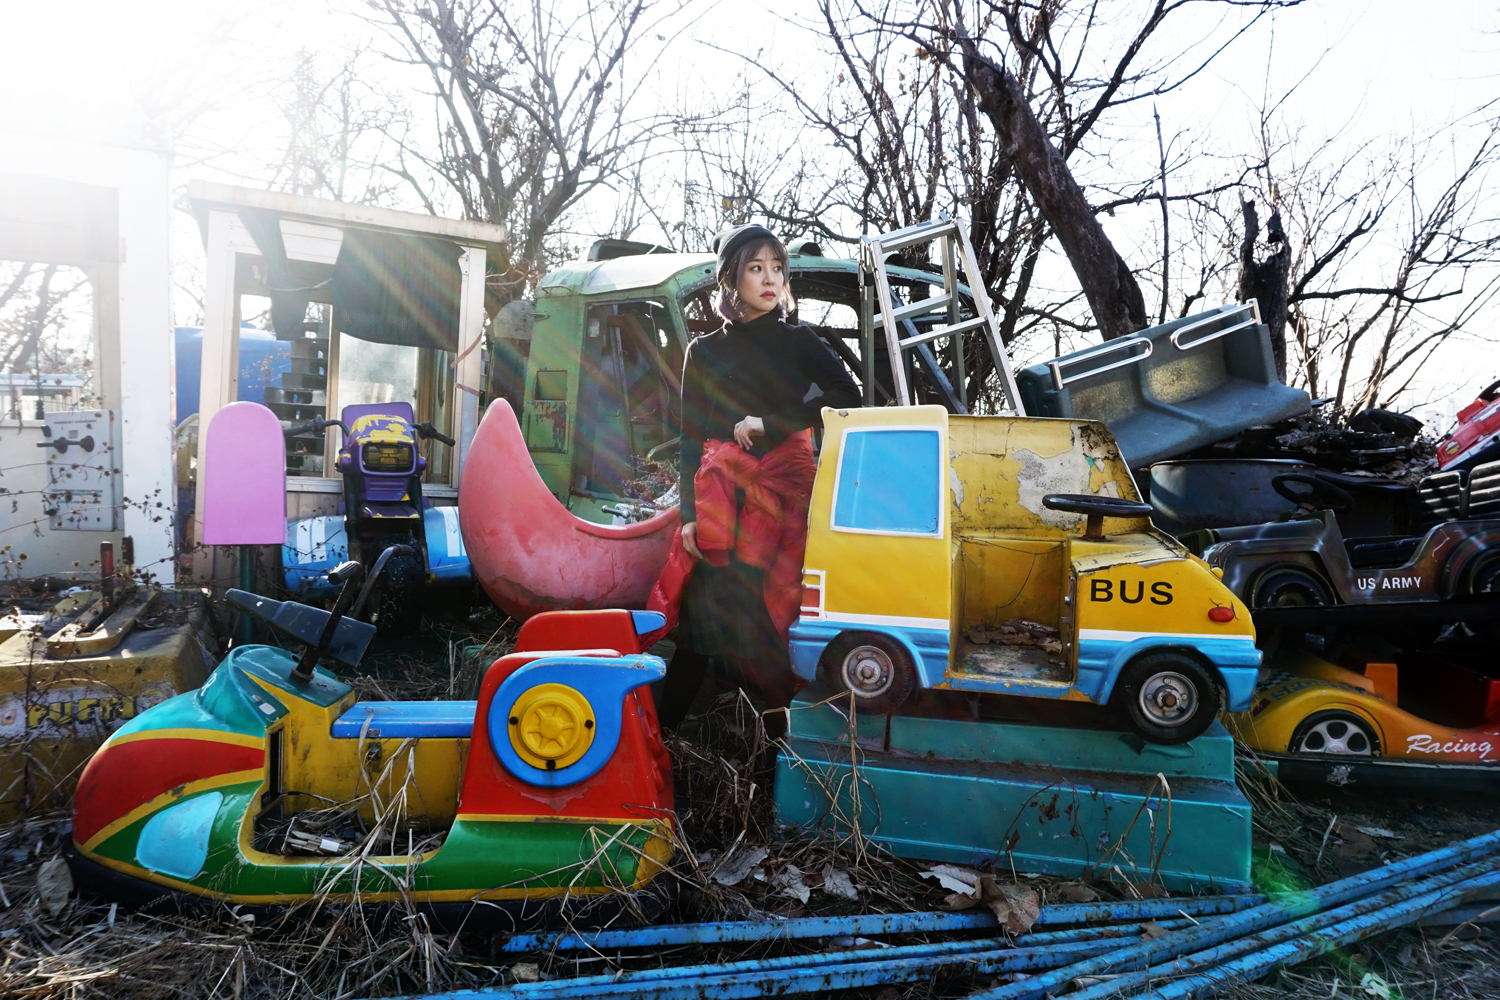 Yongma_Land_Abandoned_Amusement_Park_Seoul_Korea_Photoshoot_10